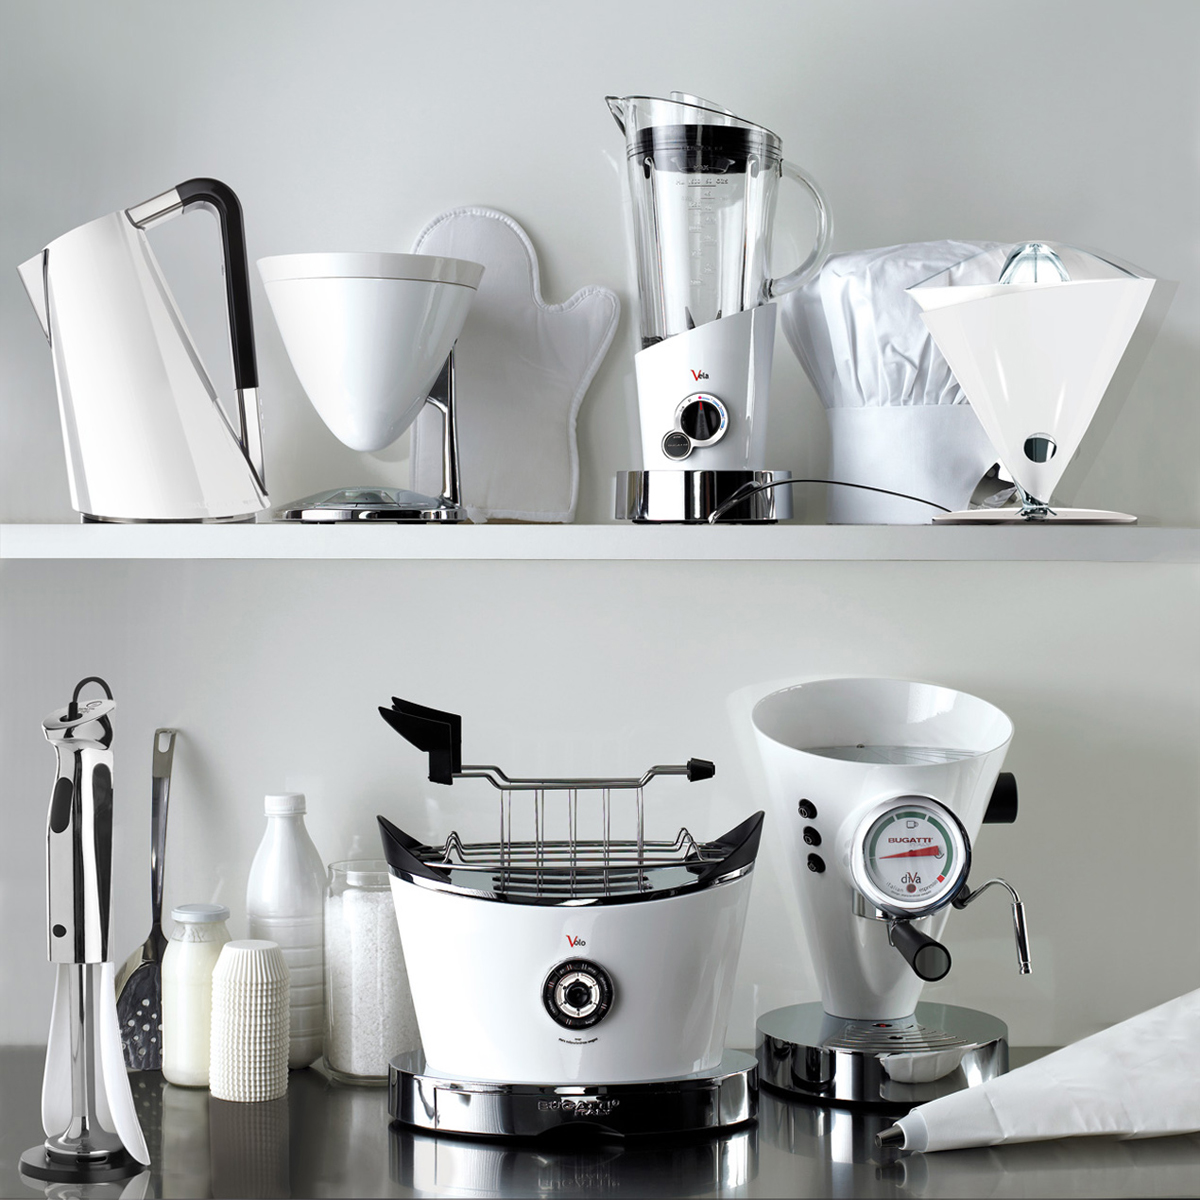 Bugatti Kitchen Appliances Coffee Machine, Toaster, Beater, Juicer, Blender, Scale, Timer and Kettle in White Colour